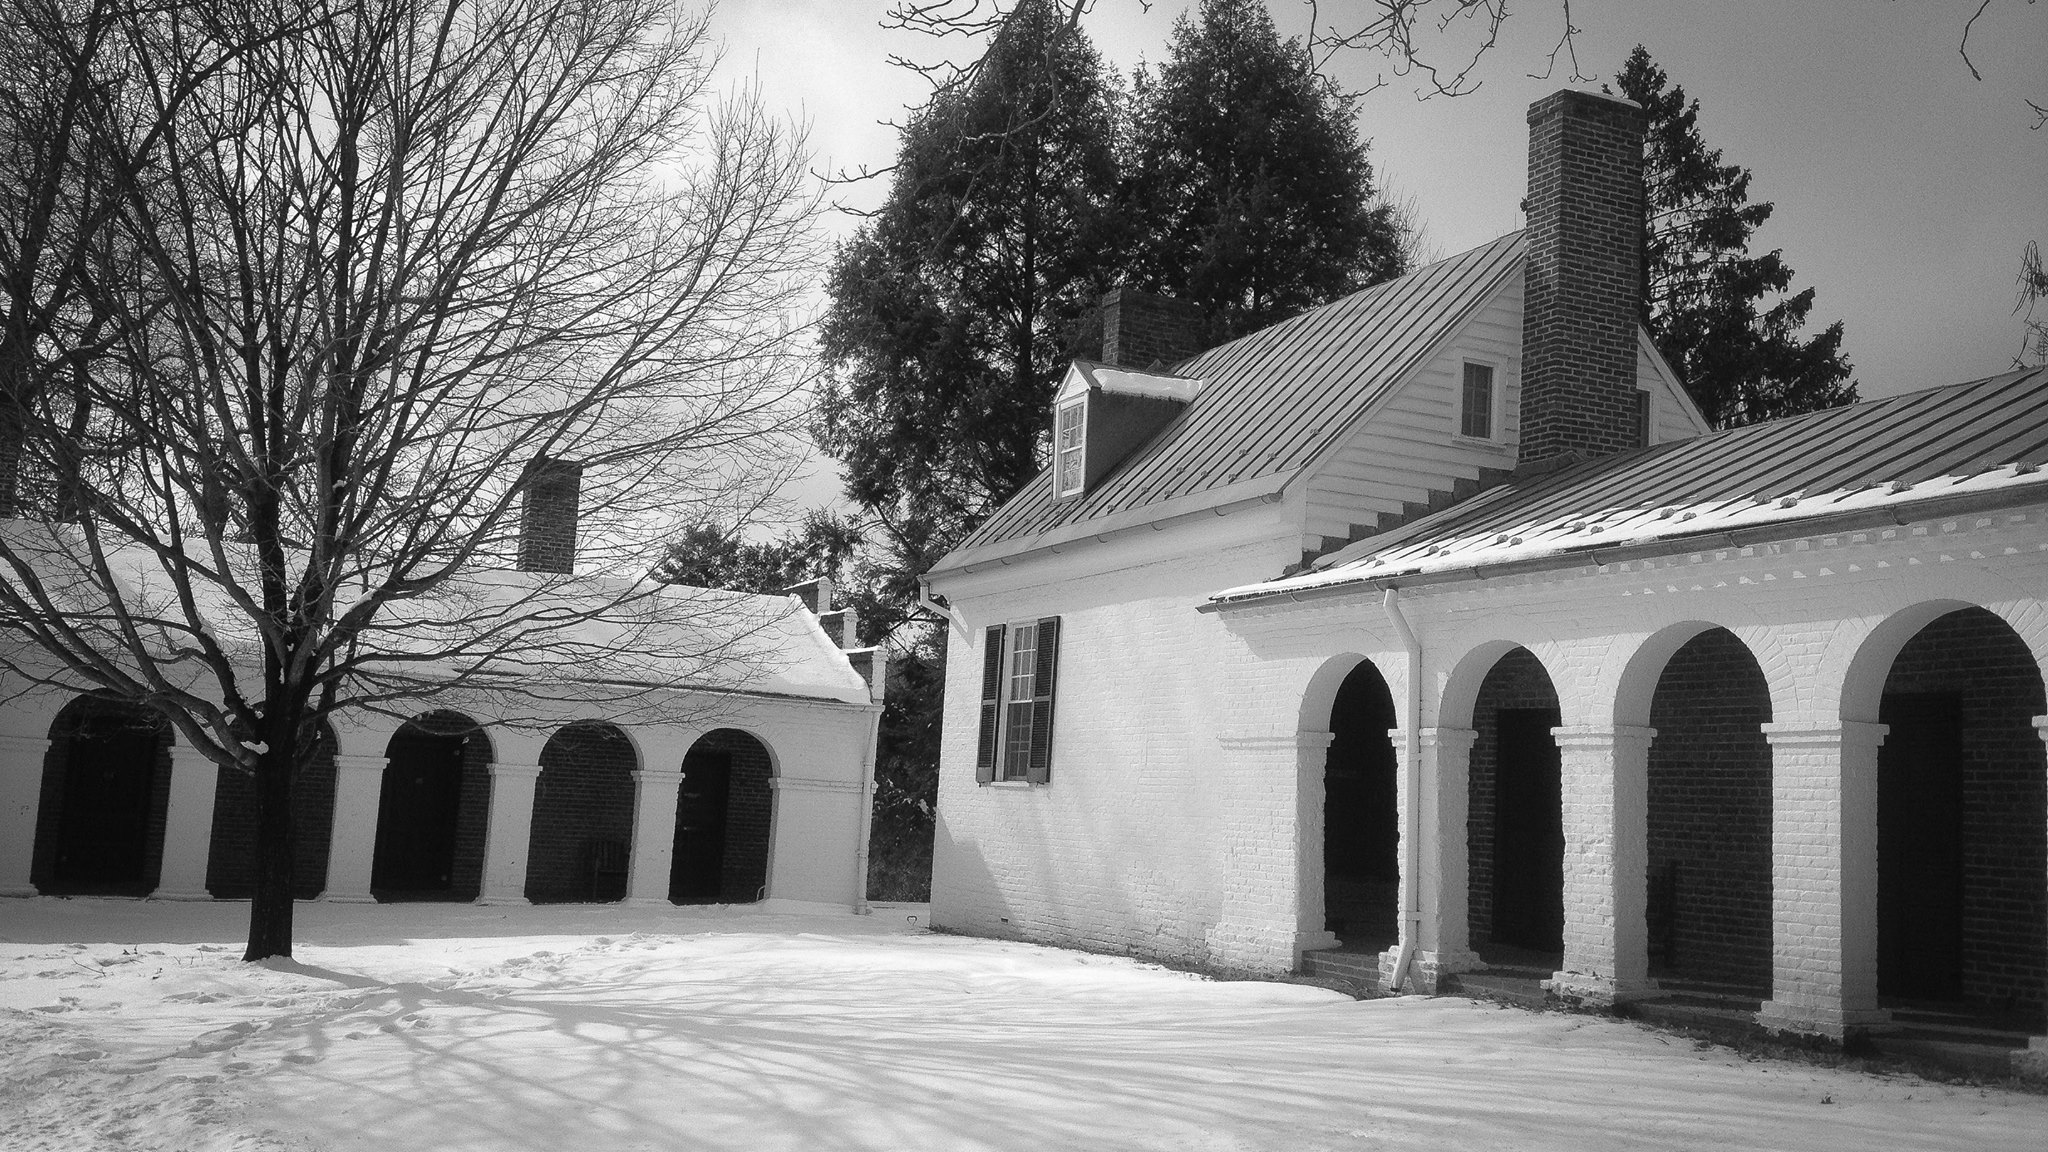 The oldest building on Grounds, James Monroe's law office, was built in 1789-90. Photo by Eduardo Montes-Bradley.